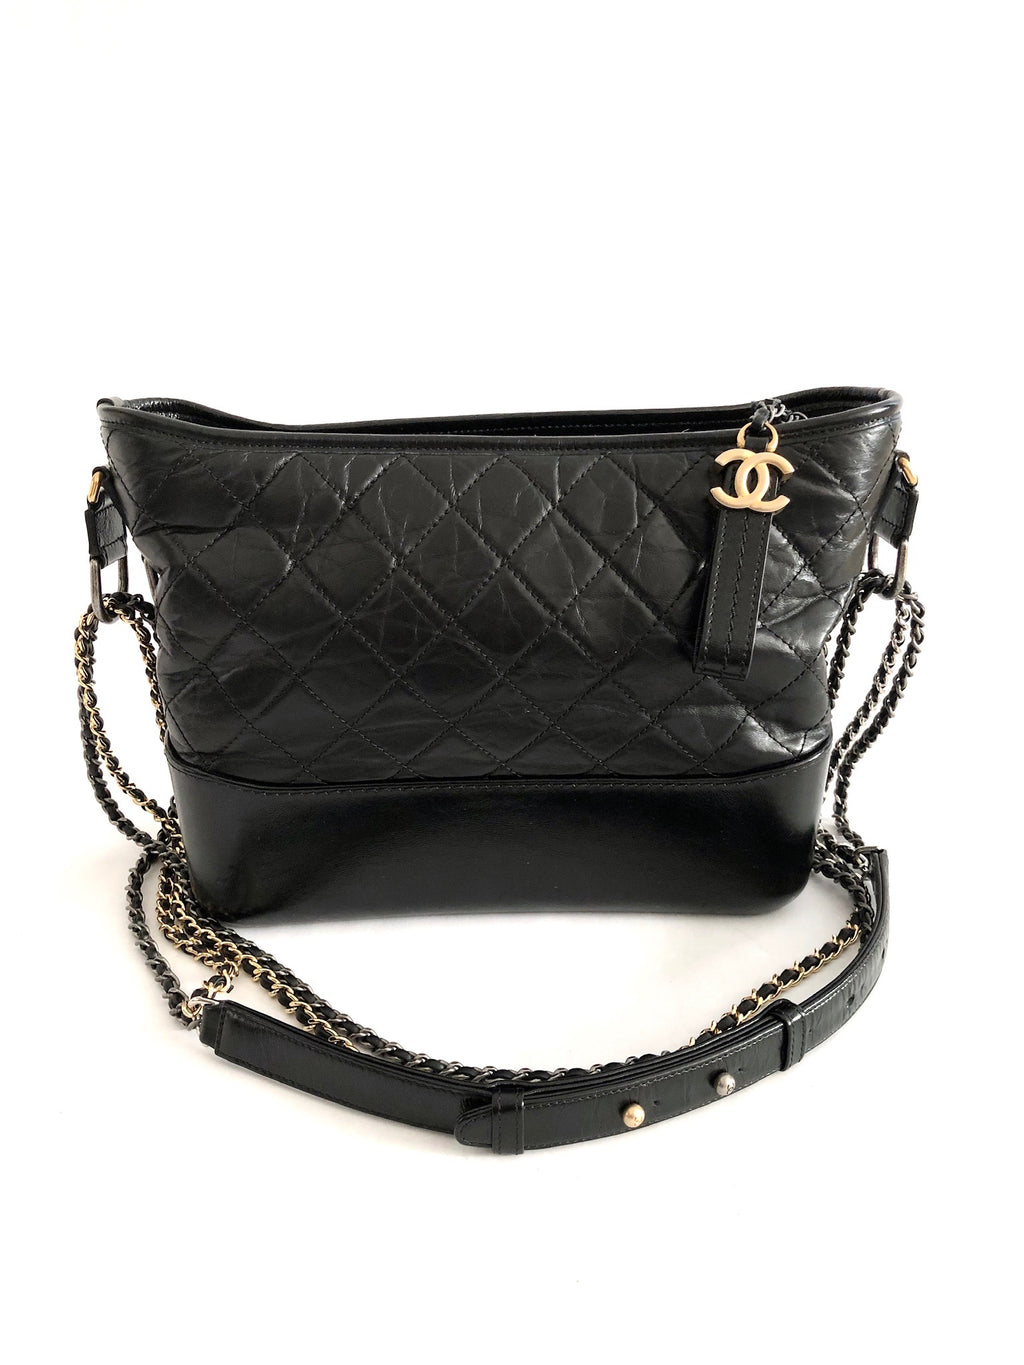 Chanel Gabrielle Hobo Black Leather Shoulder Bag